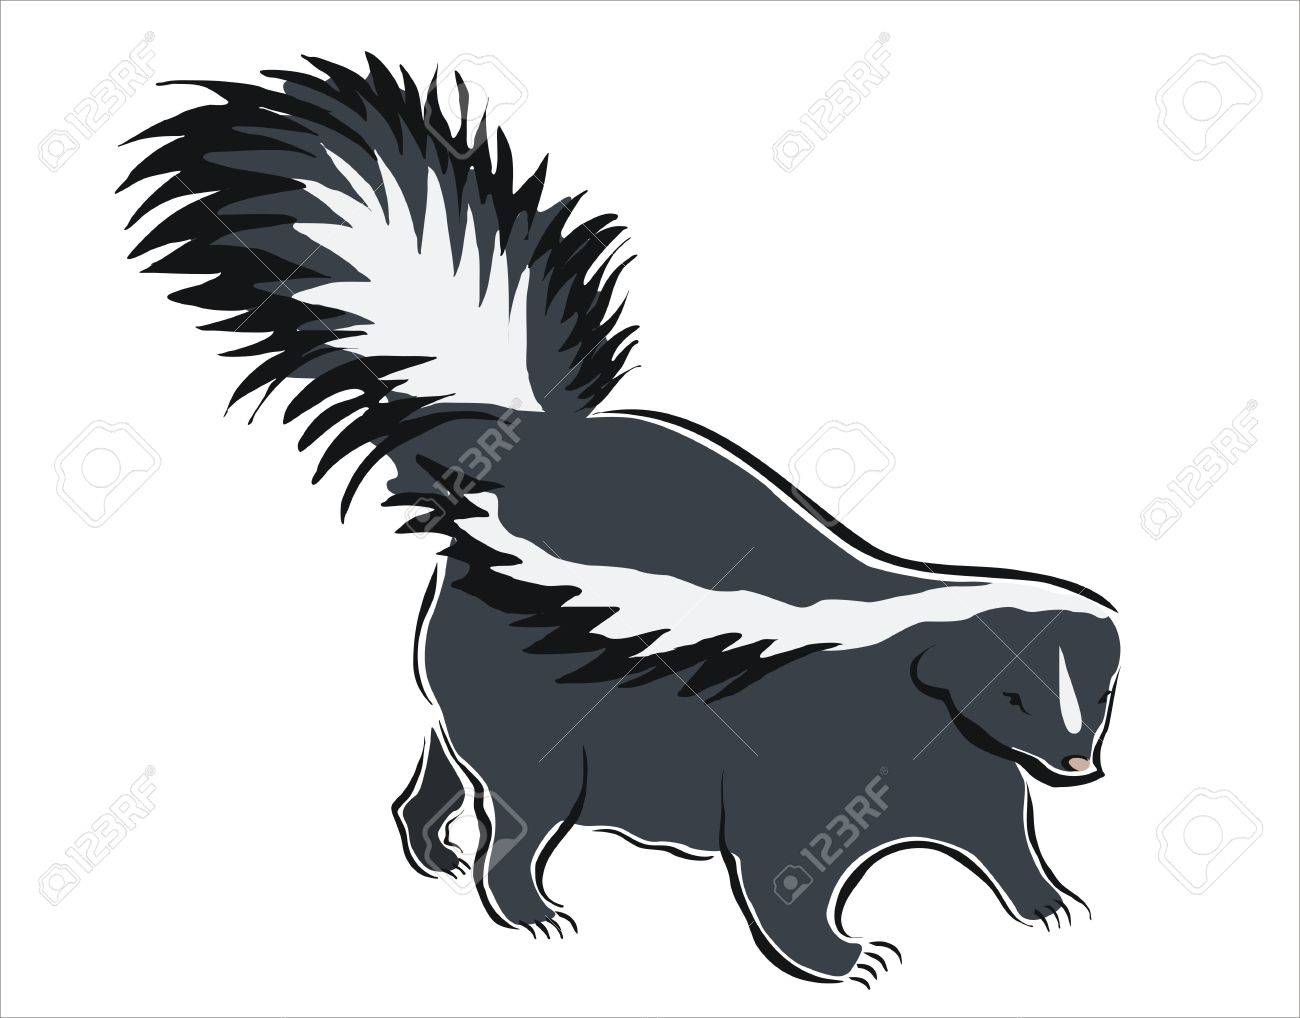 Drawing Of A Black And White Skunk Royalty Free Cliparts Vectors